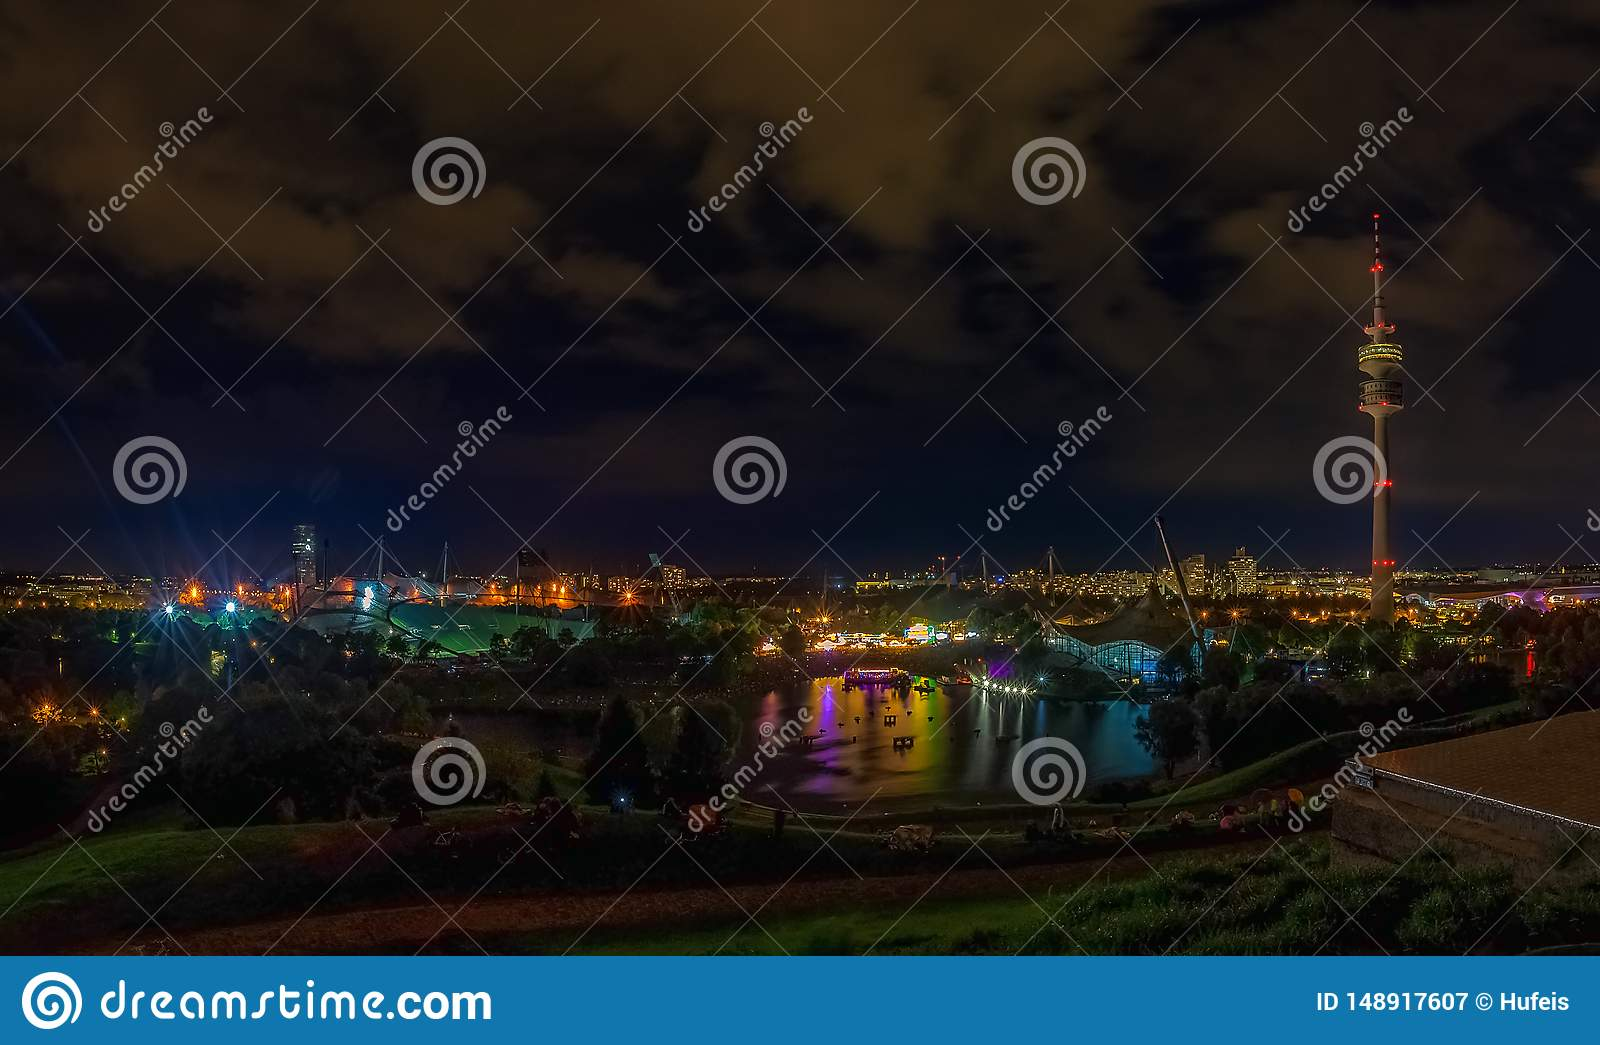 The beautiful view of the Olympic Park at night.